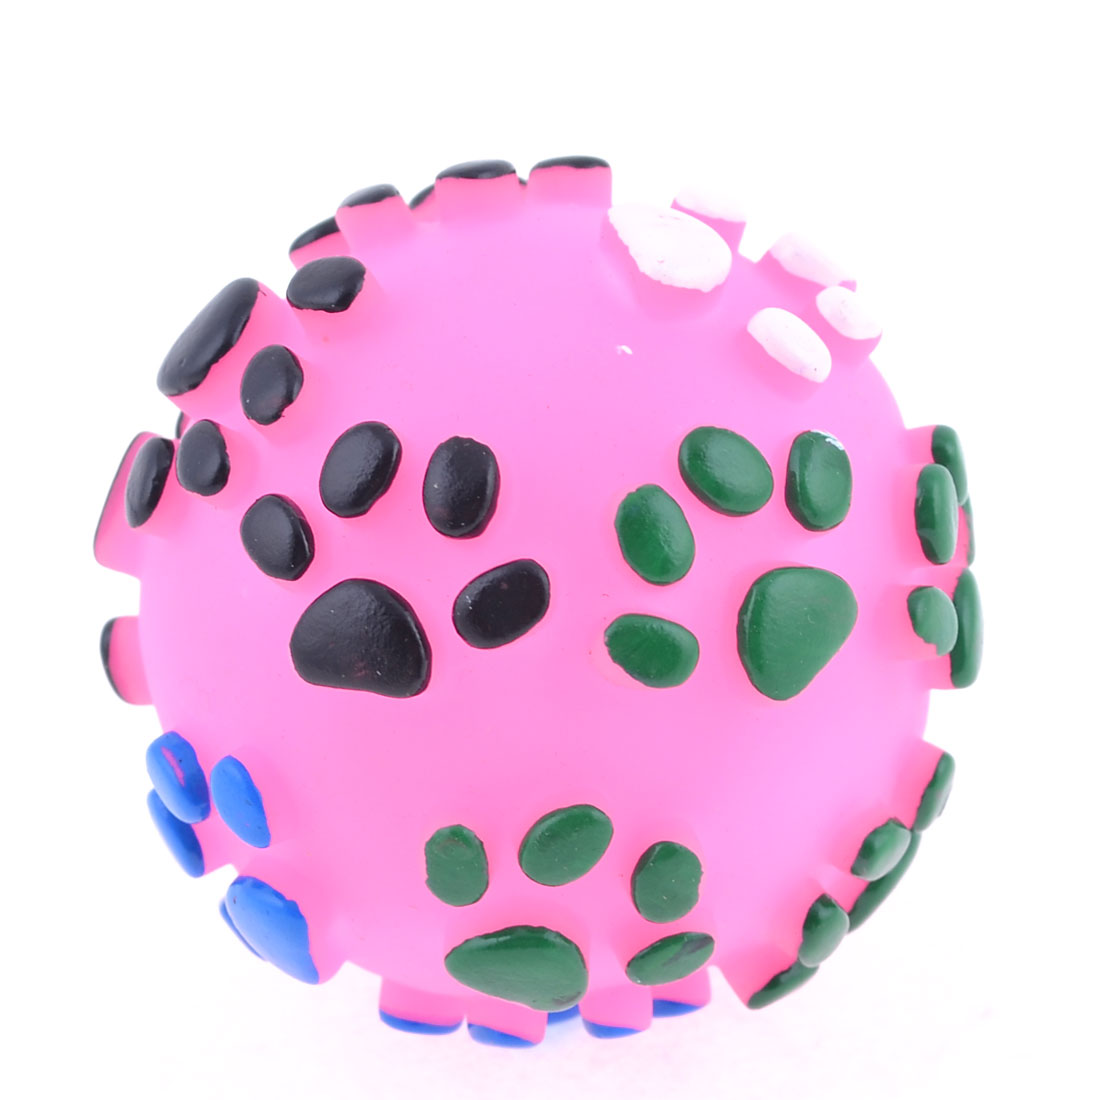 Textured Paw Design Fuchsia Rubber Round Ball Squeaky Toy for Pet Dog Poodle